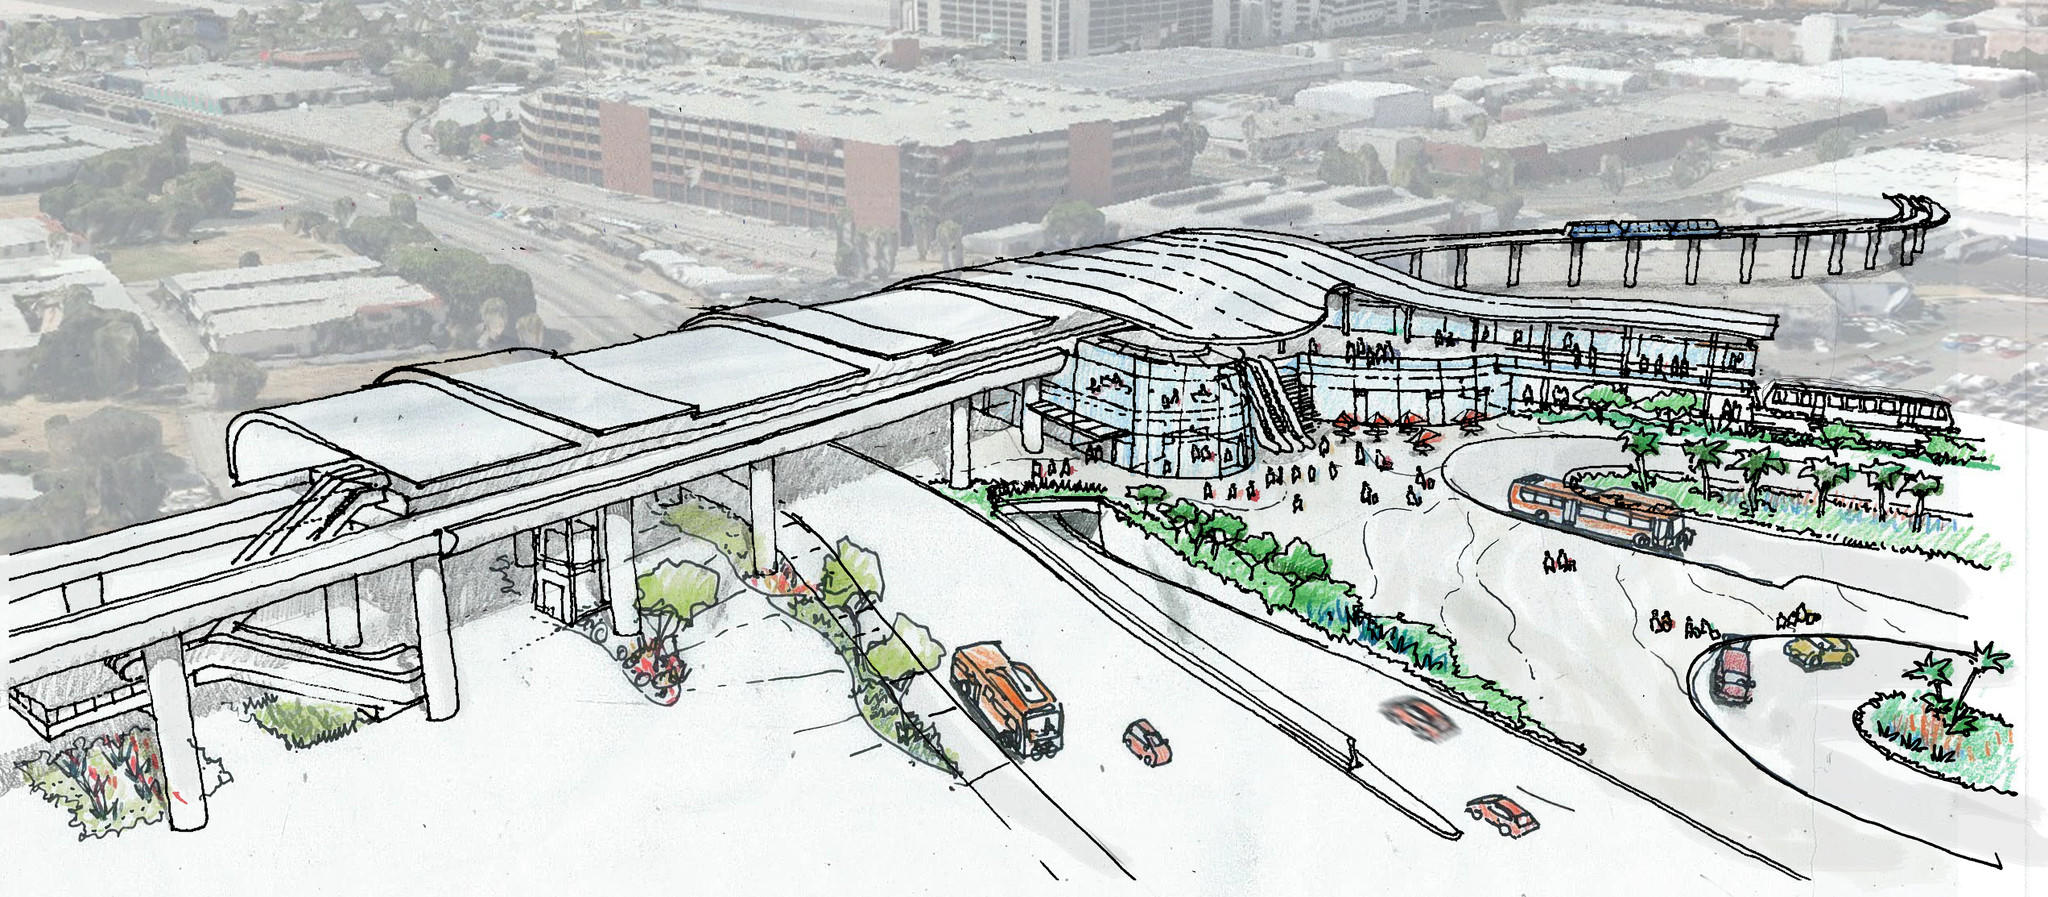 Artist's concept sketch of the light-rail station to be built at 96th Street and Aviation Boulevard, where passengers will board an aerial circulator train to their terminals.